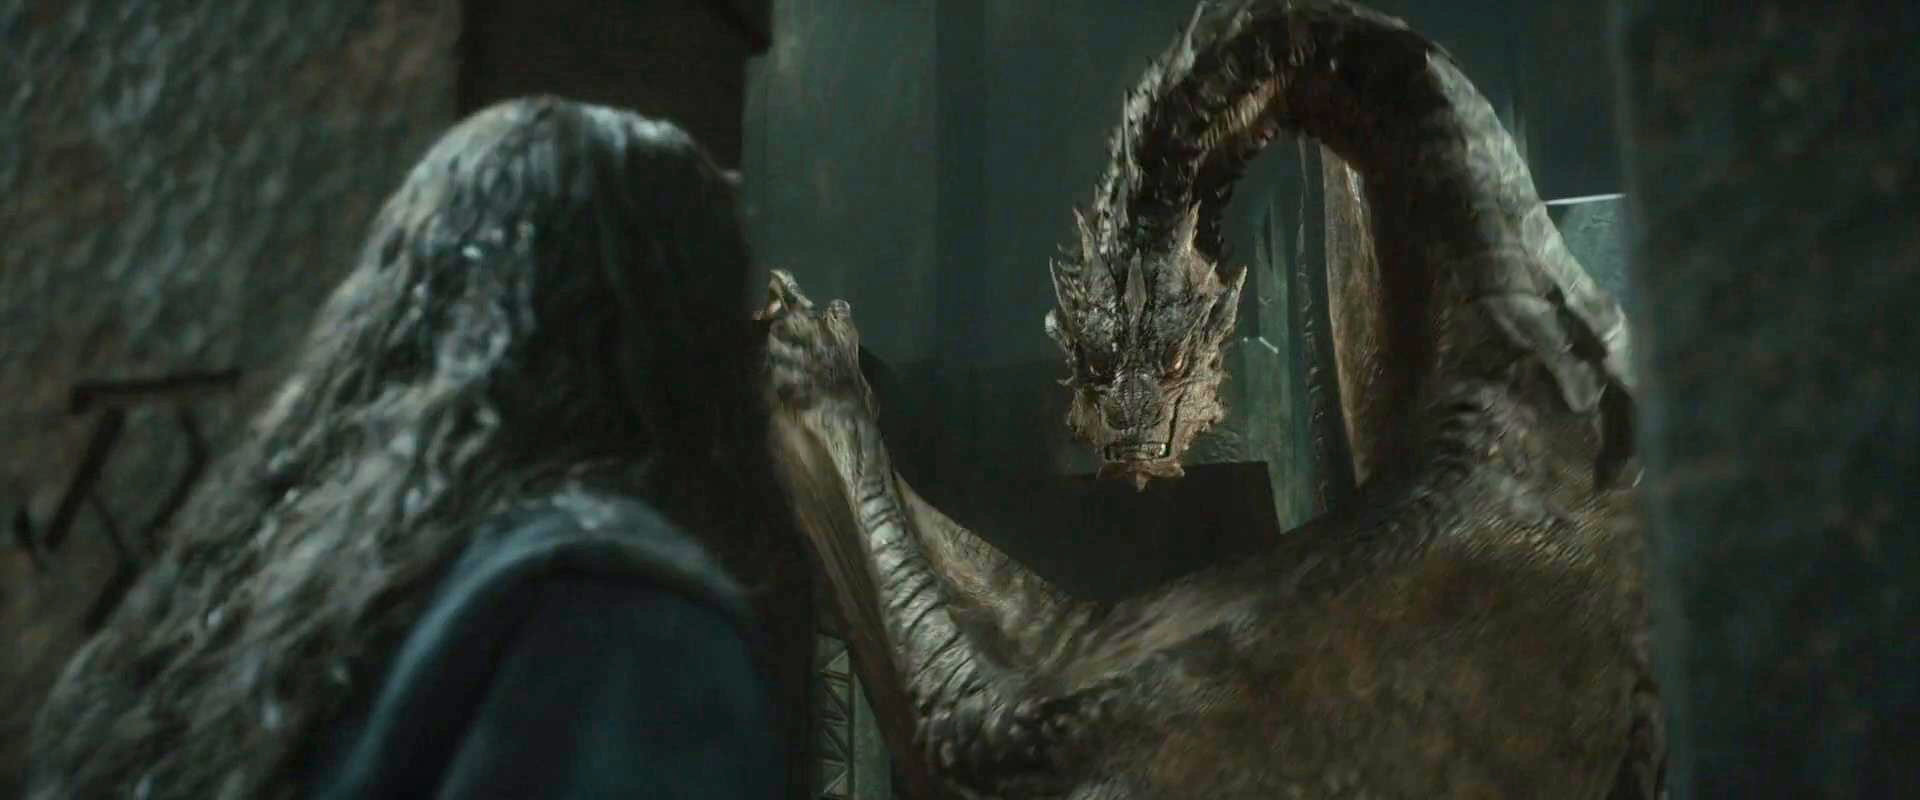 image the hobbit smaug 06 by jd1680ad7ufqp4jpg the